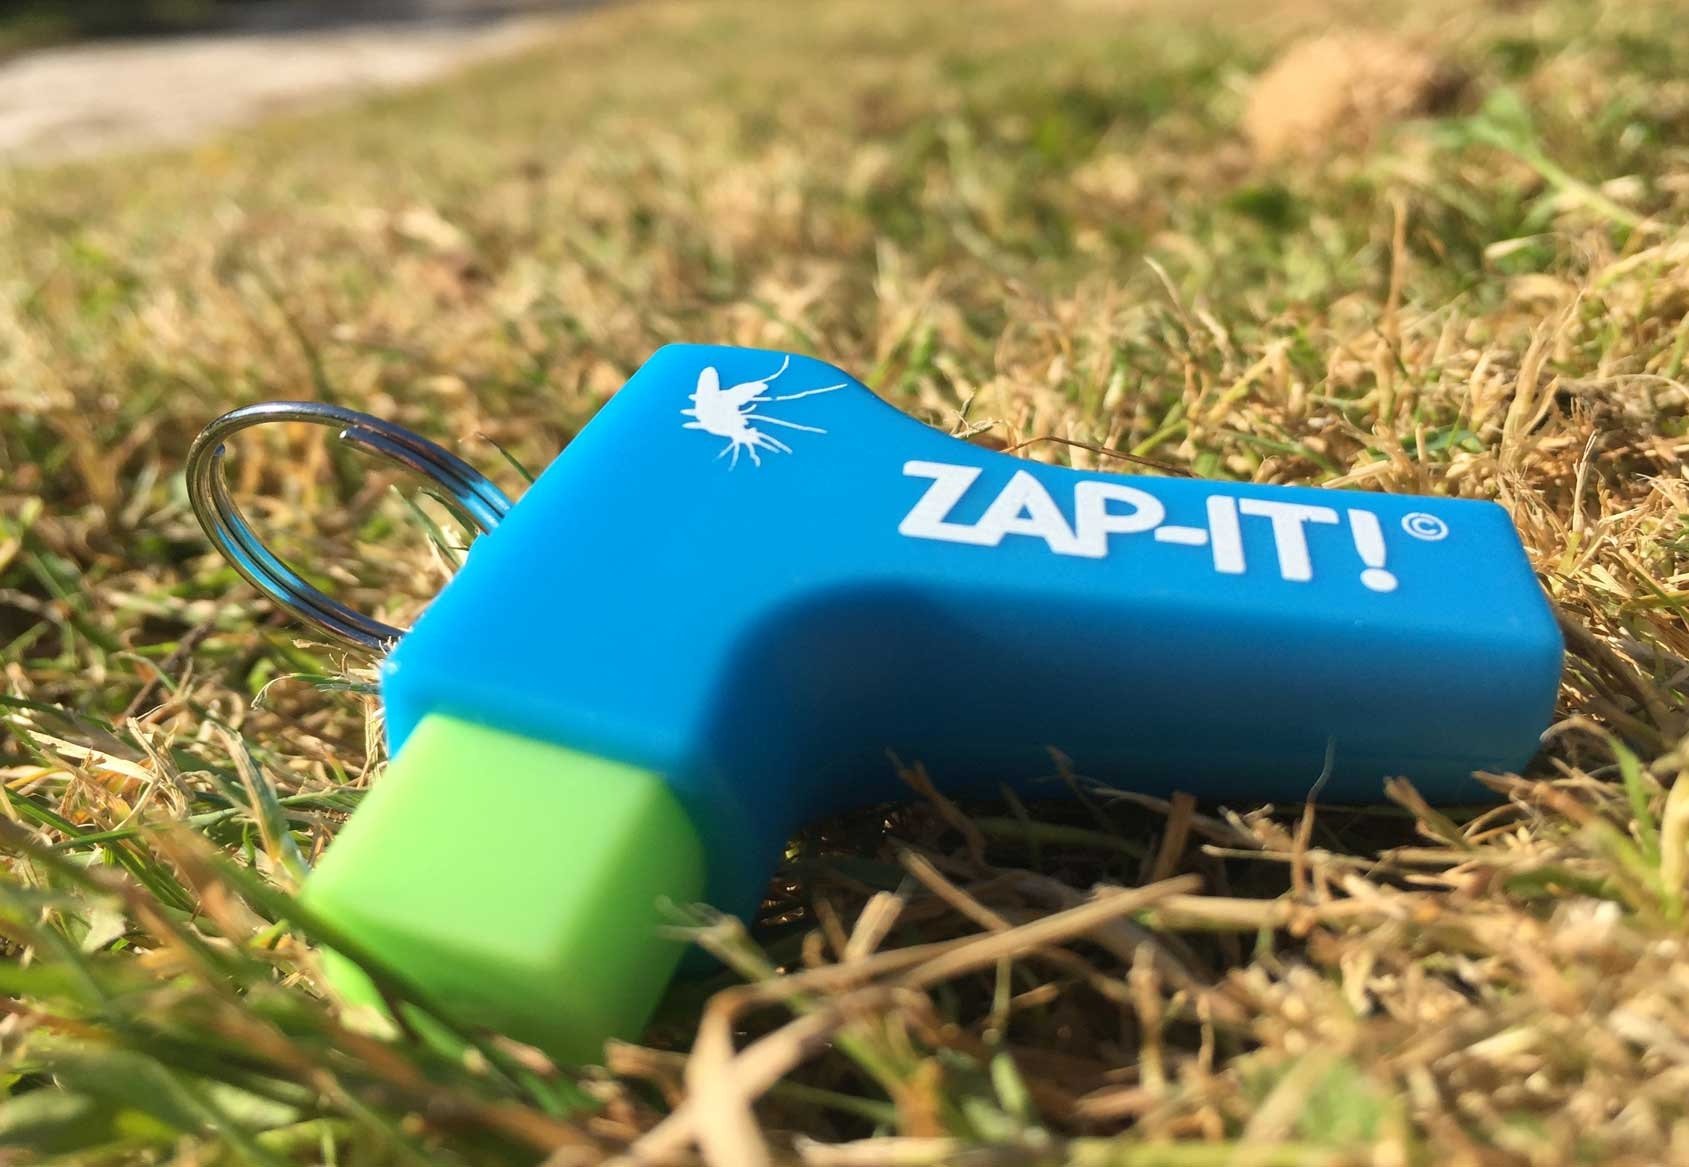 A ZAP-IT! INSECT BITE RELIEF DEVICE sweepstakes